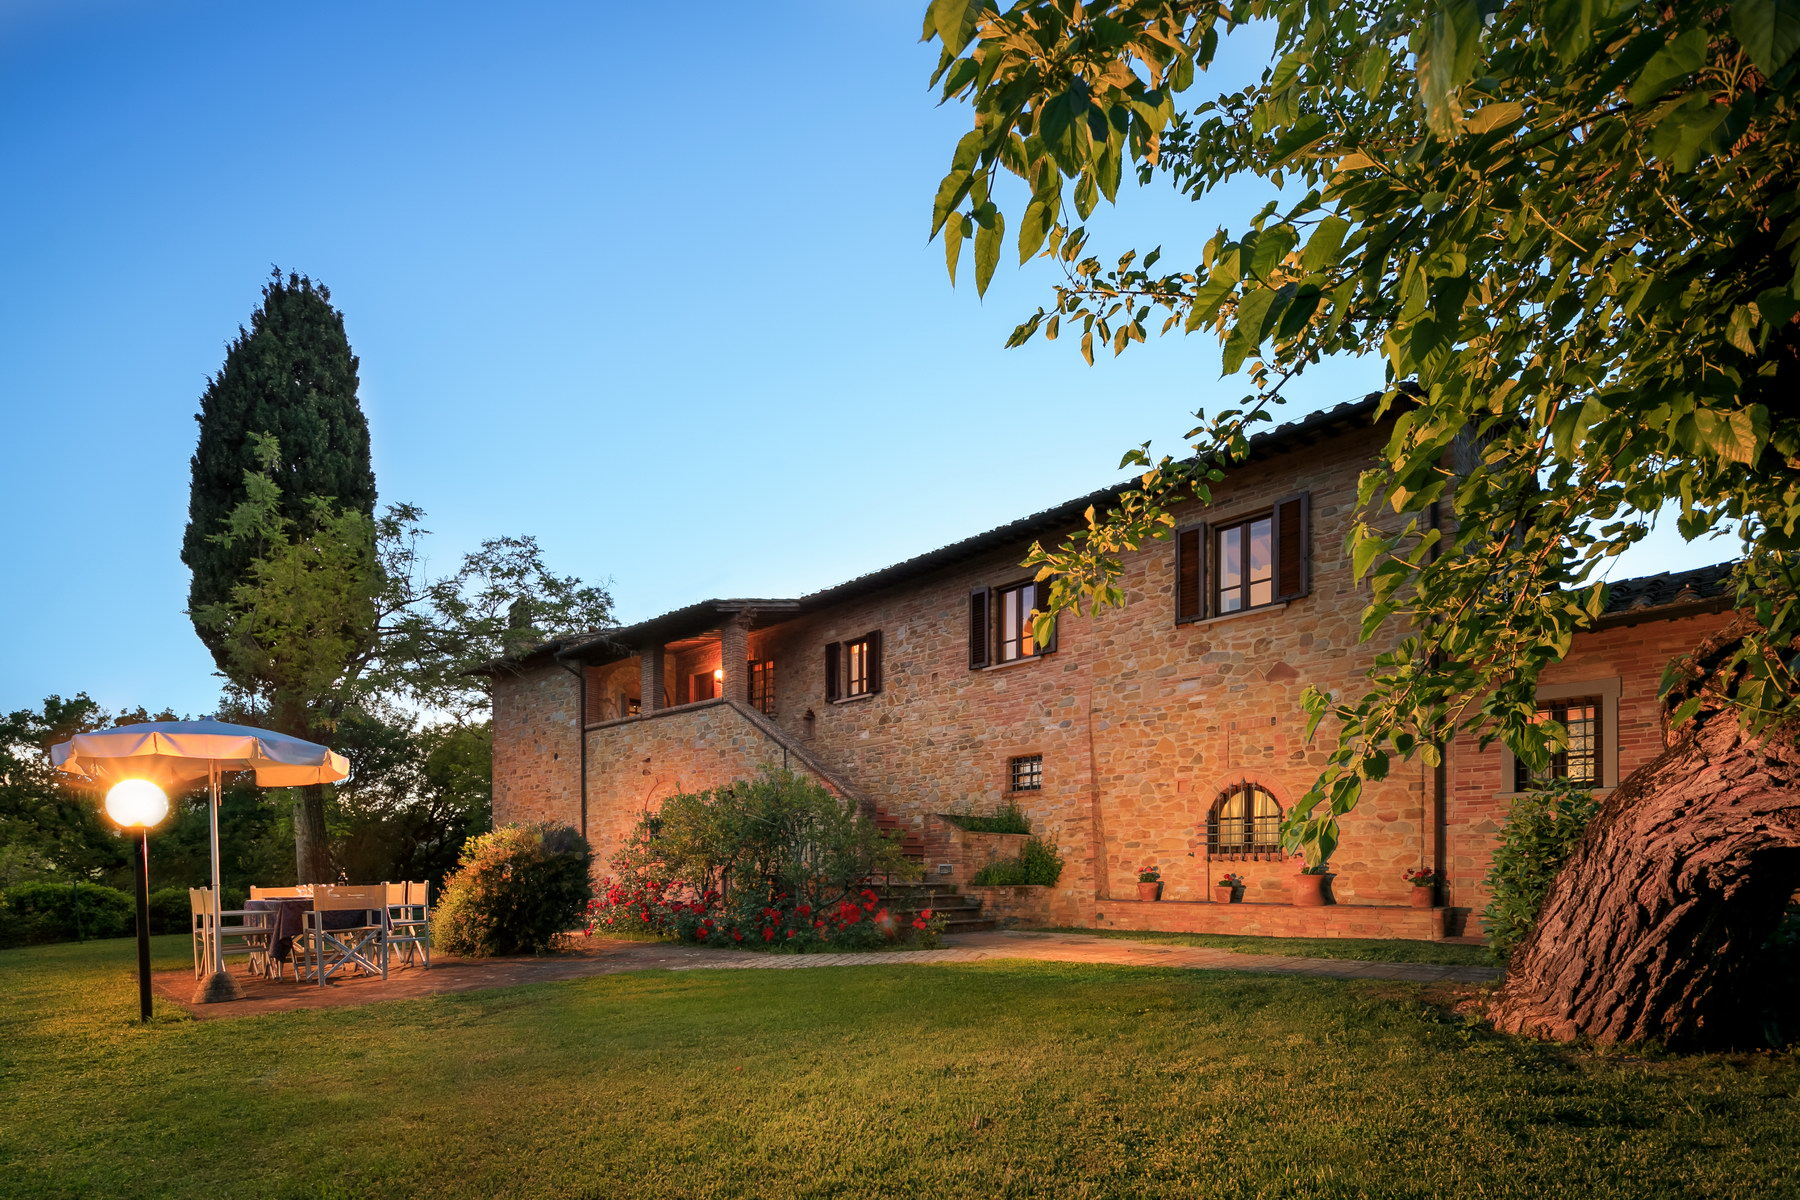 Single Family Home for Sale at Wonderful farmhouse in the Tuscan countryside Via delle Colline Montaione, Florence 50050 Italy